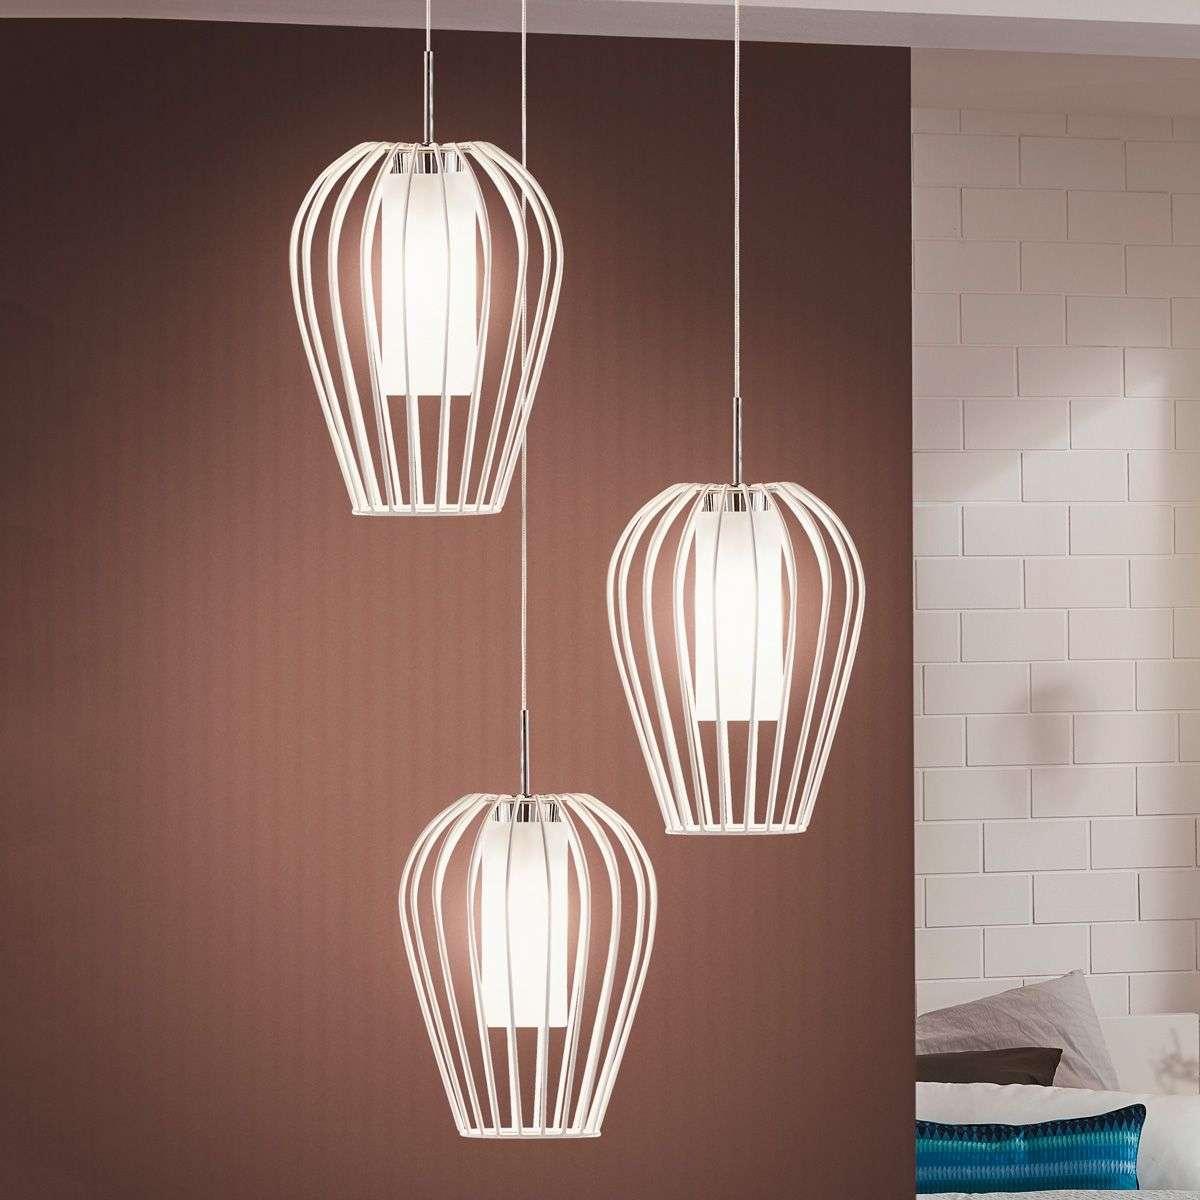 Stijlvolle LED hanglamp Vencino in wit-3031738-31